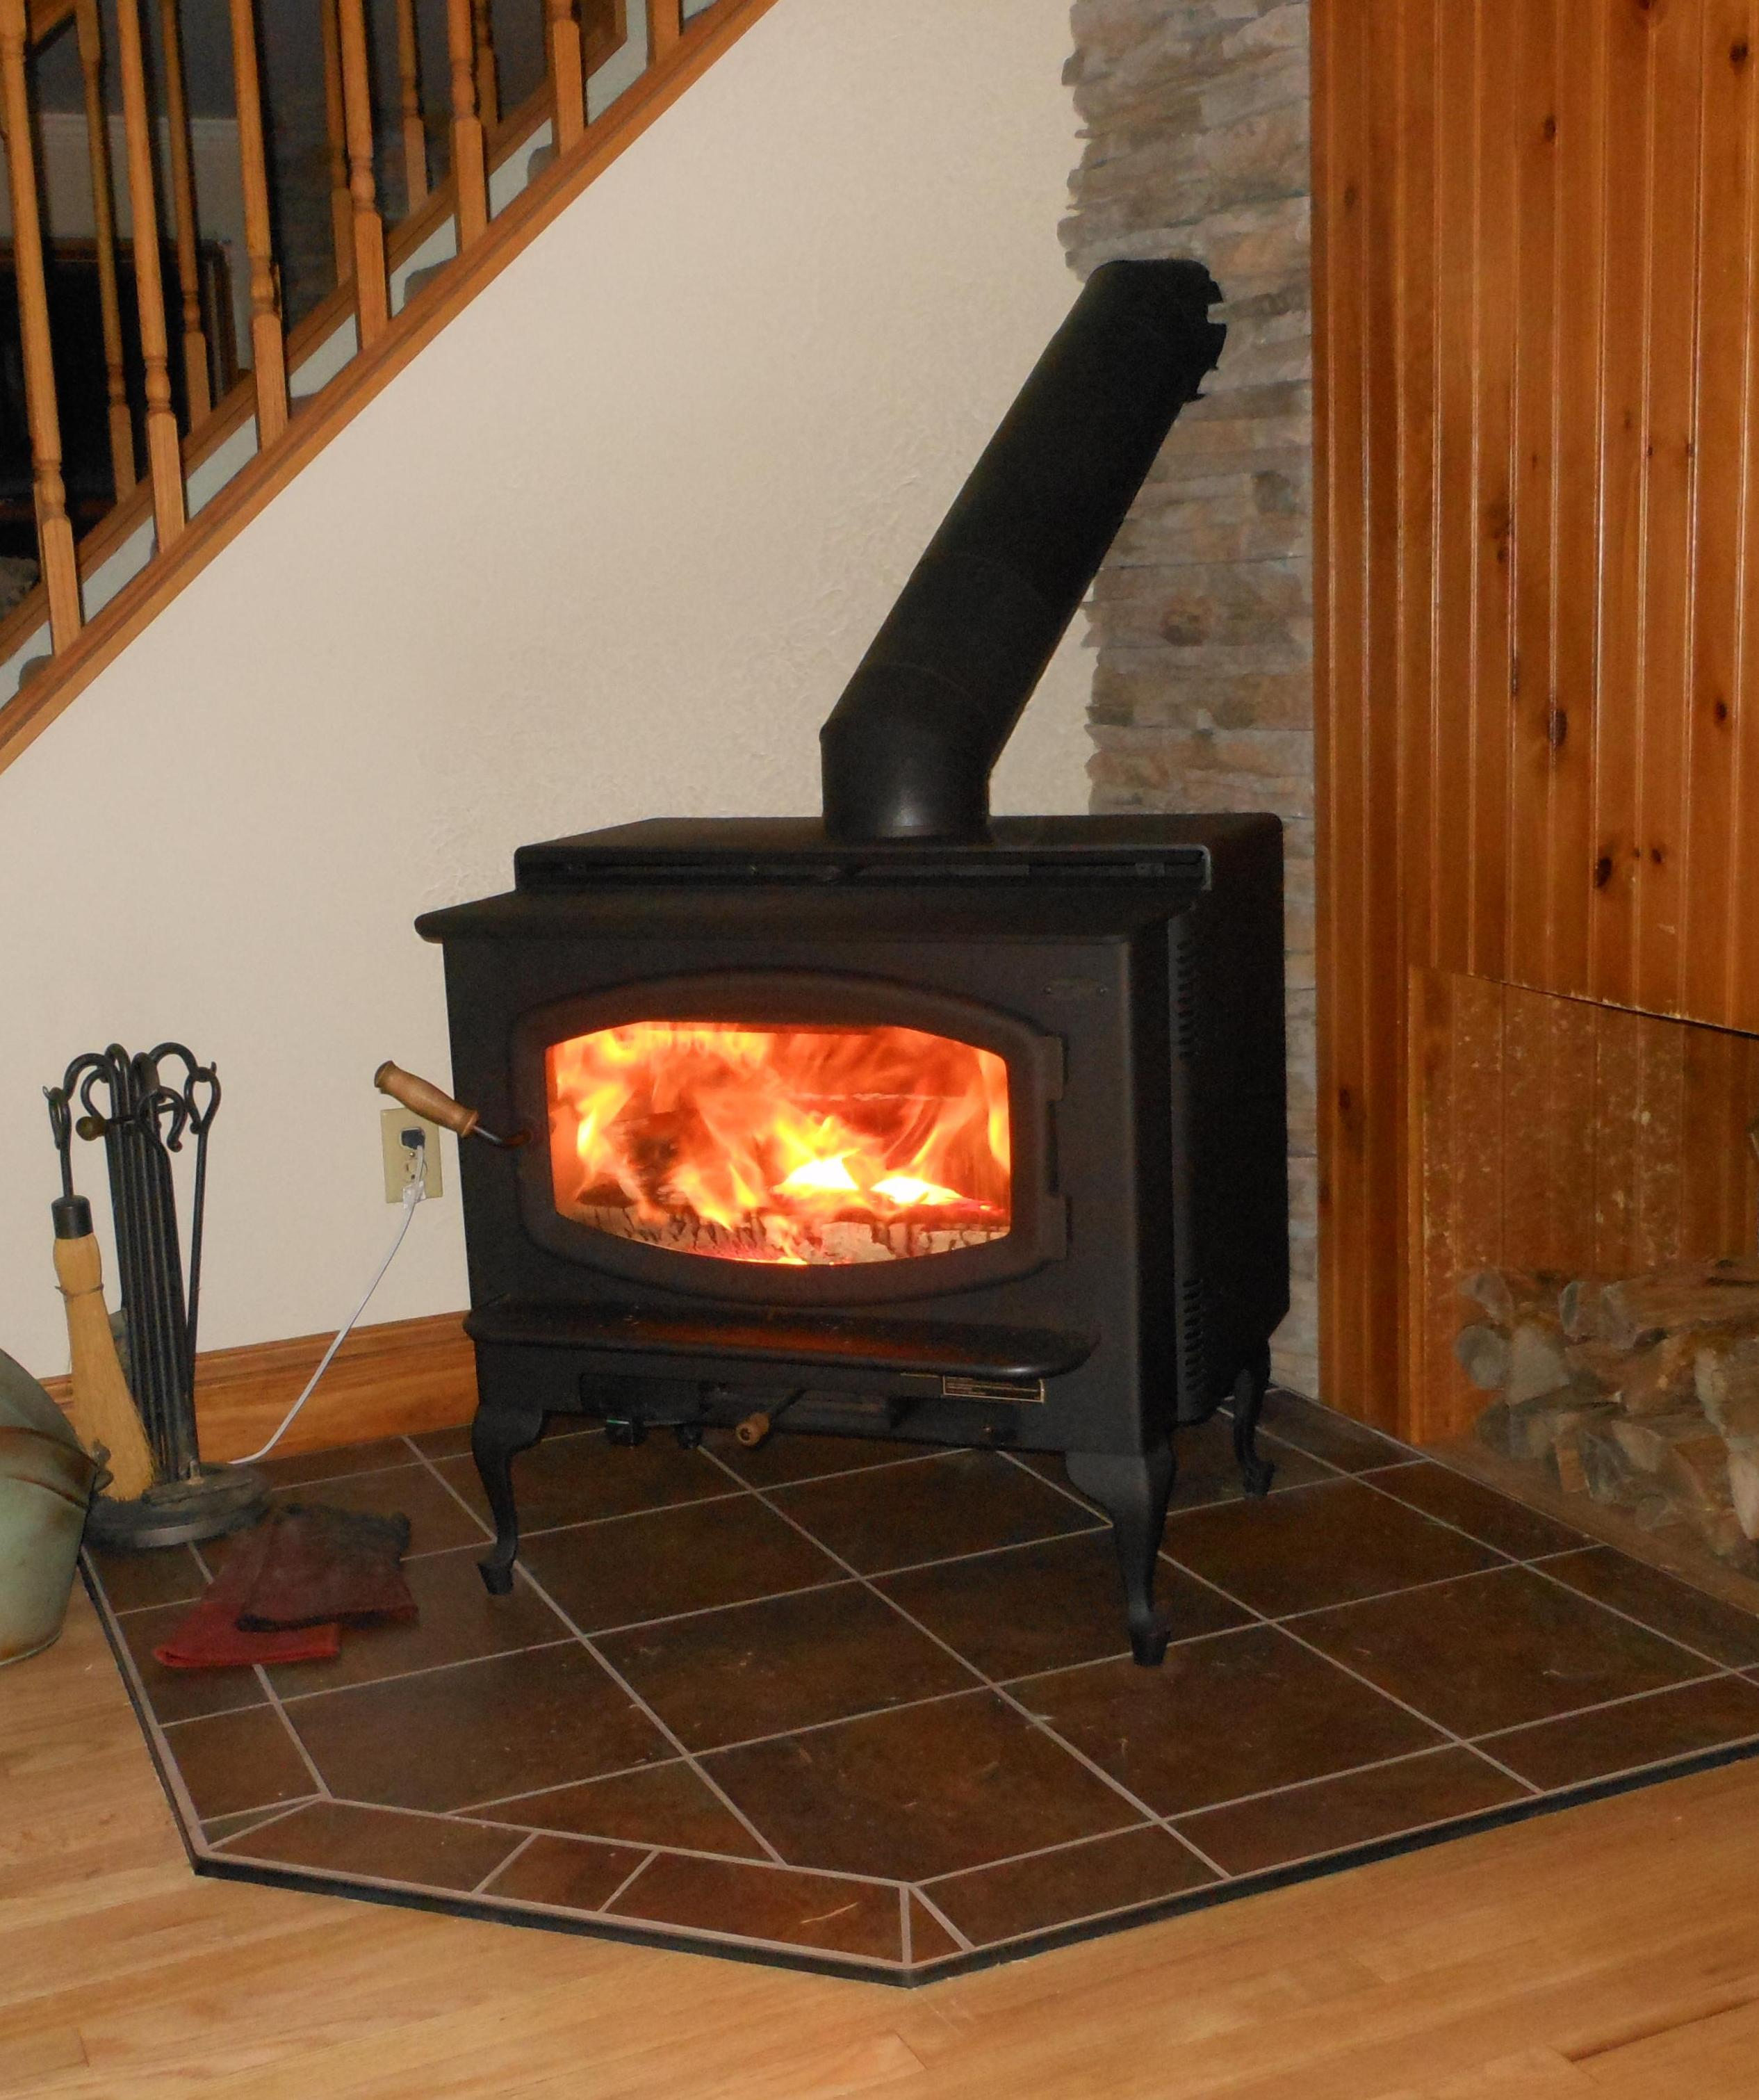 avalon olympic woodstove north winds stove fireplace rh mainepelletstove com avalon gas fireplace troubleshooting avalon gas fireplace thermostat wiring